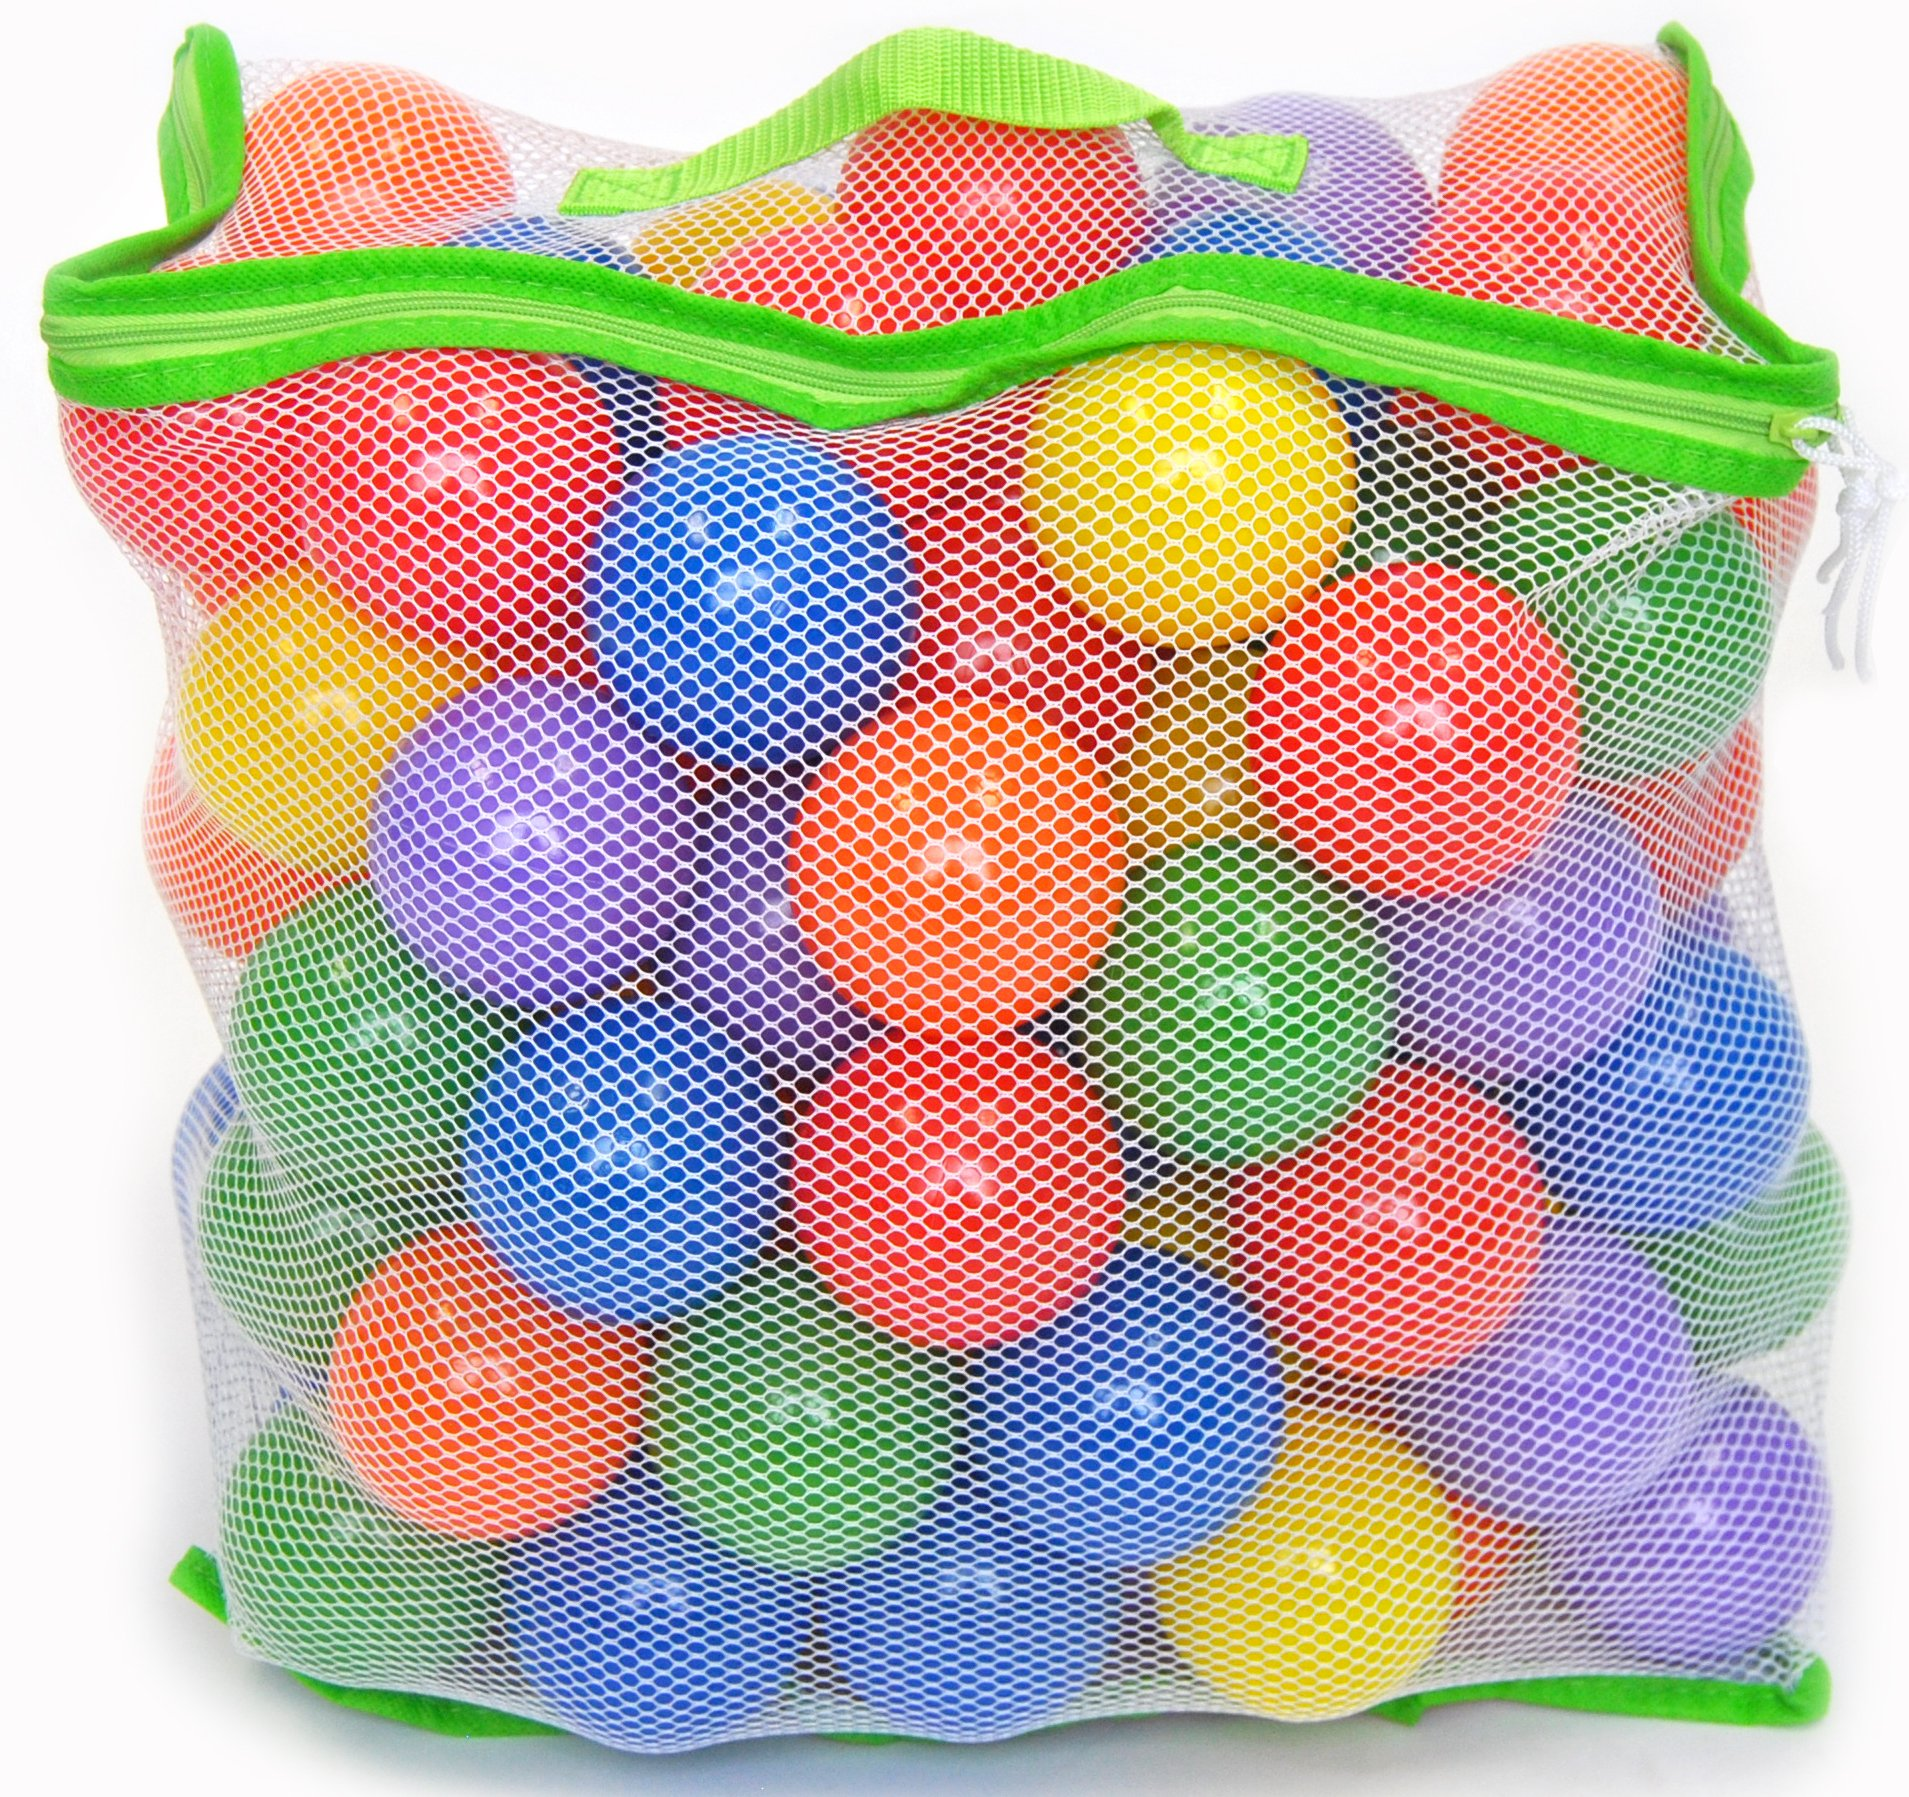 100 Wonder Playball Non-Toxic Crush Proof Quality Balls w/Mesh Tote by Wonder Playball